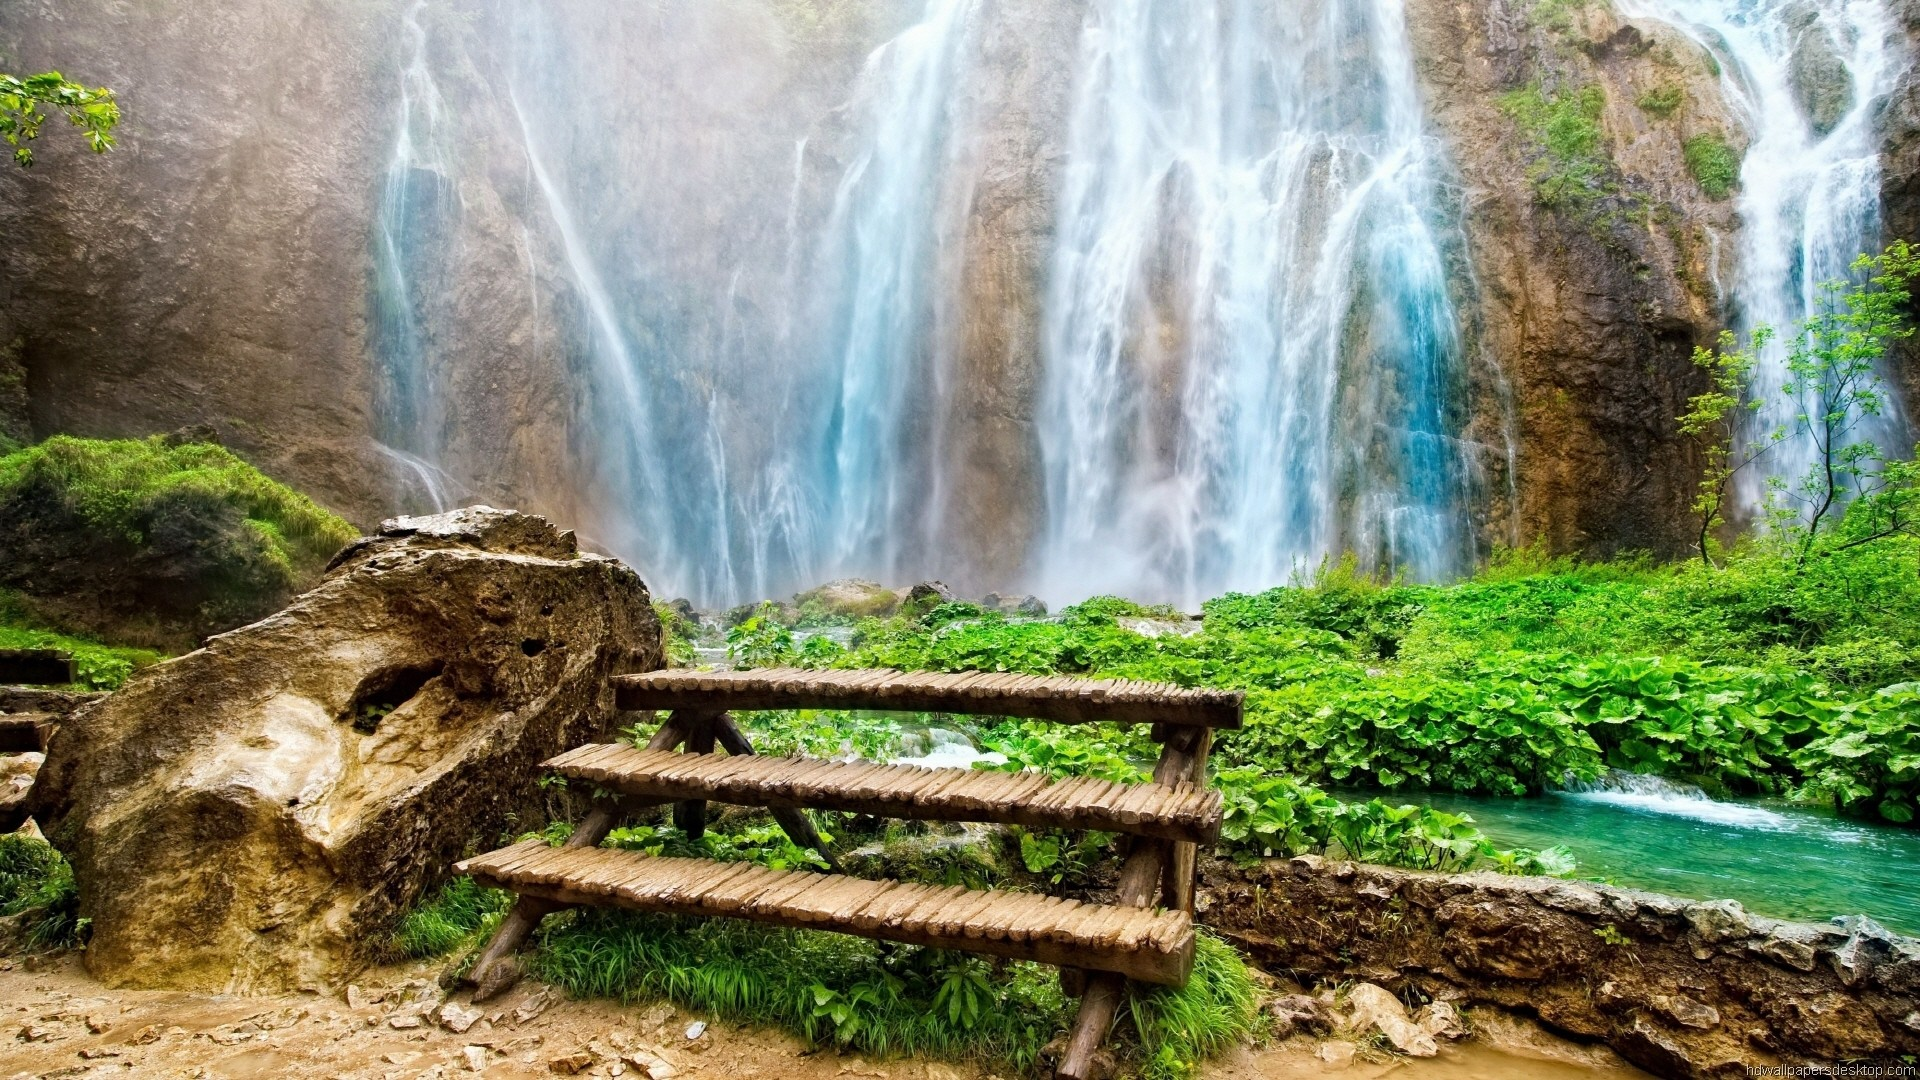 Hd Backgrounds 1080p Nature 6 HD Wallpapers Full 1920x1080